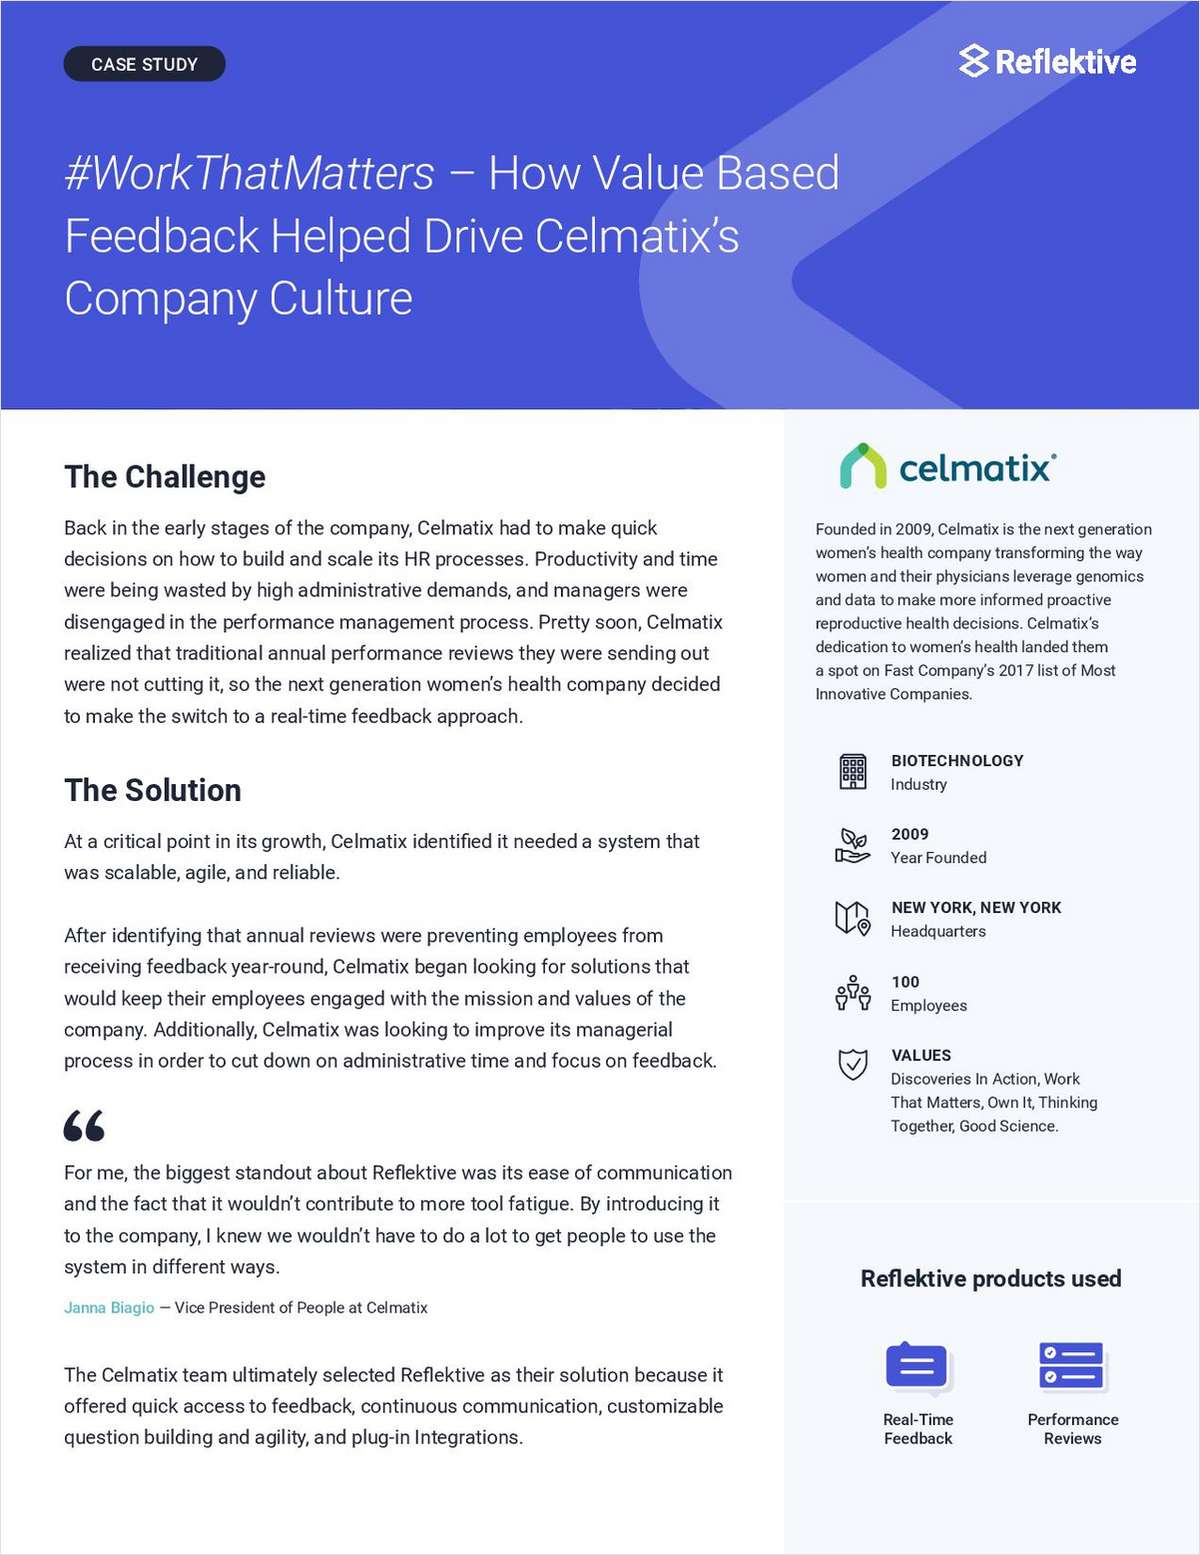 #WorkThatMatters -- How Value Based Feedback Helped Drive Celmatix's Company Culture